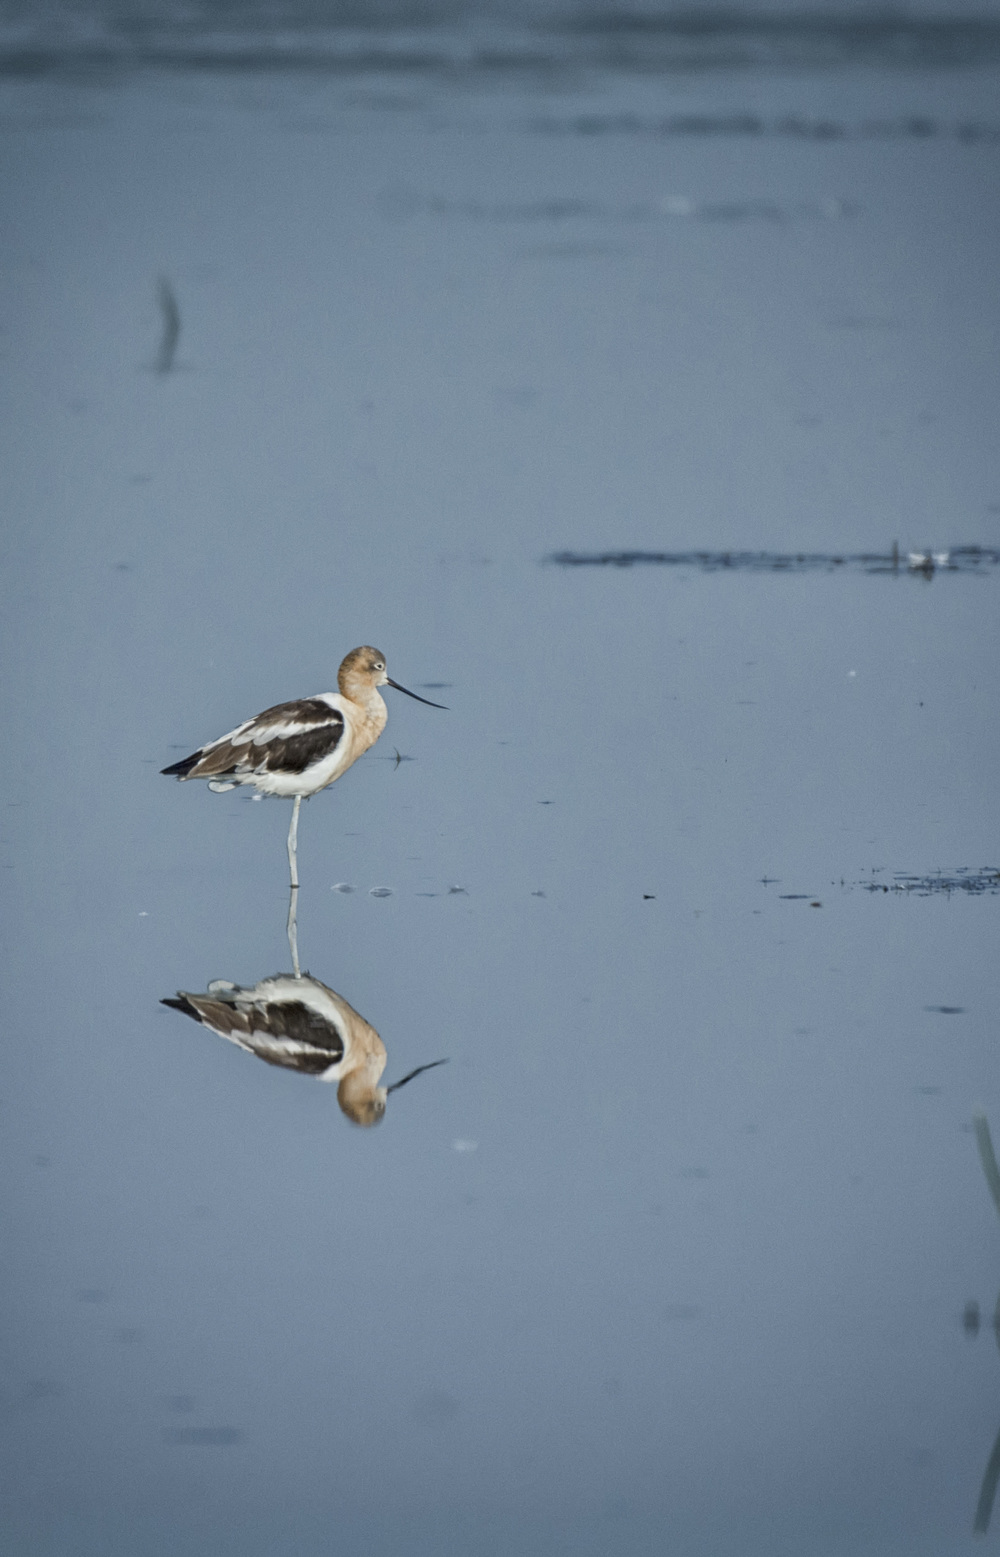 American Avocet at Bombay Hook NWR